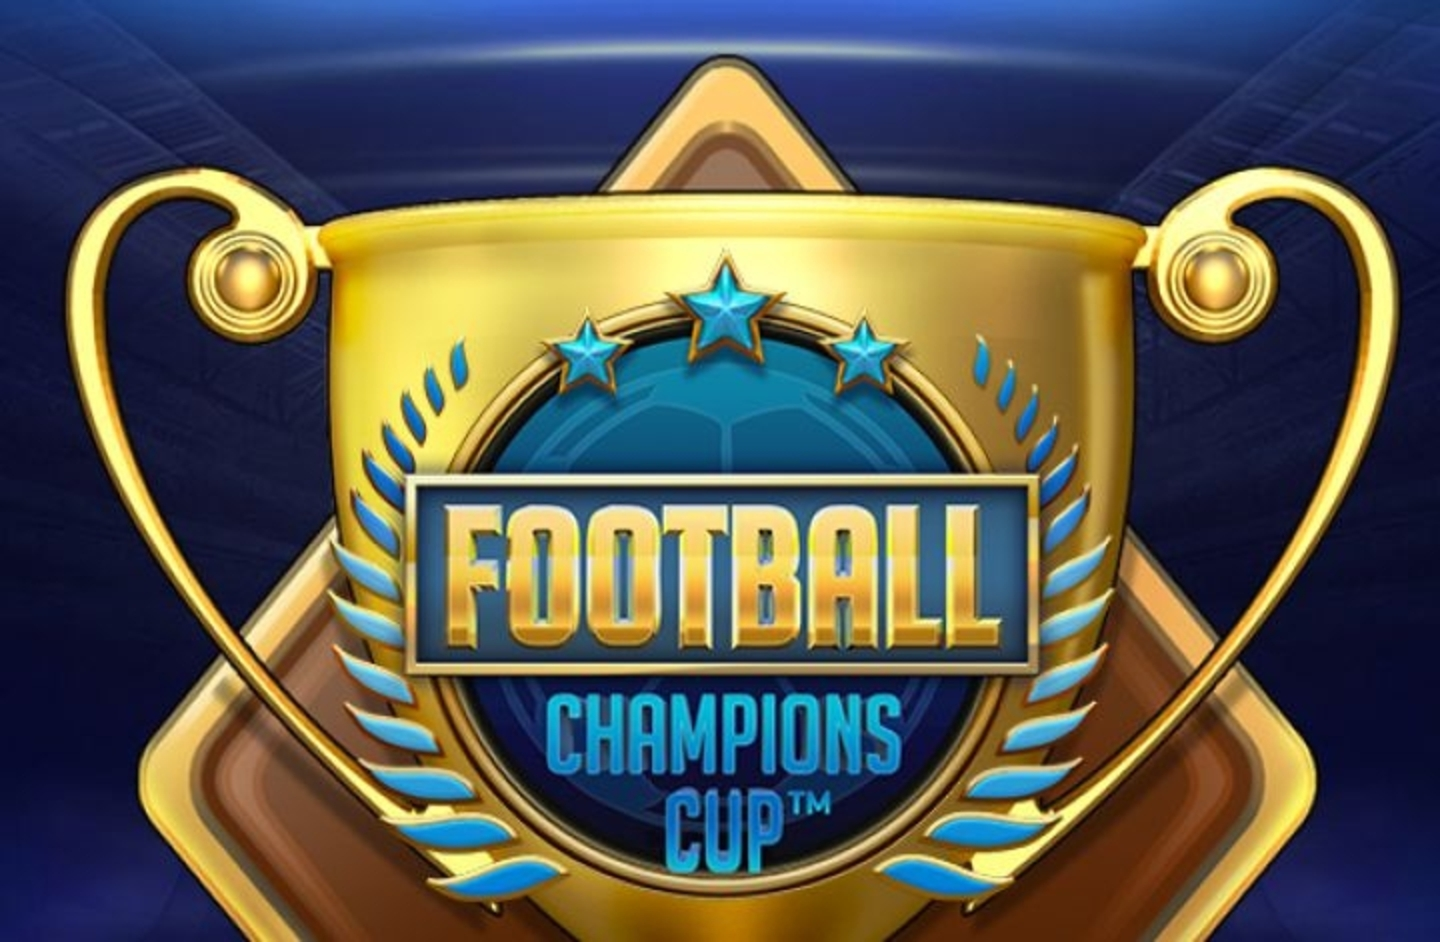 Football: Champions Cup Online Slot Demo Game by NetEnt